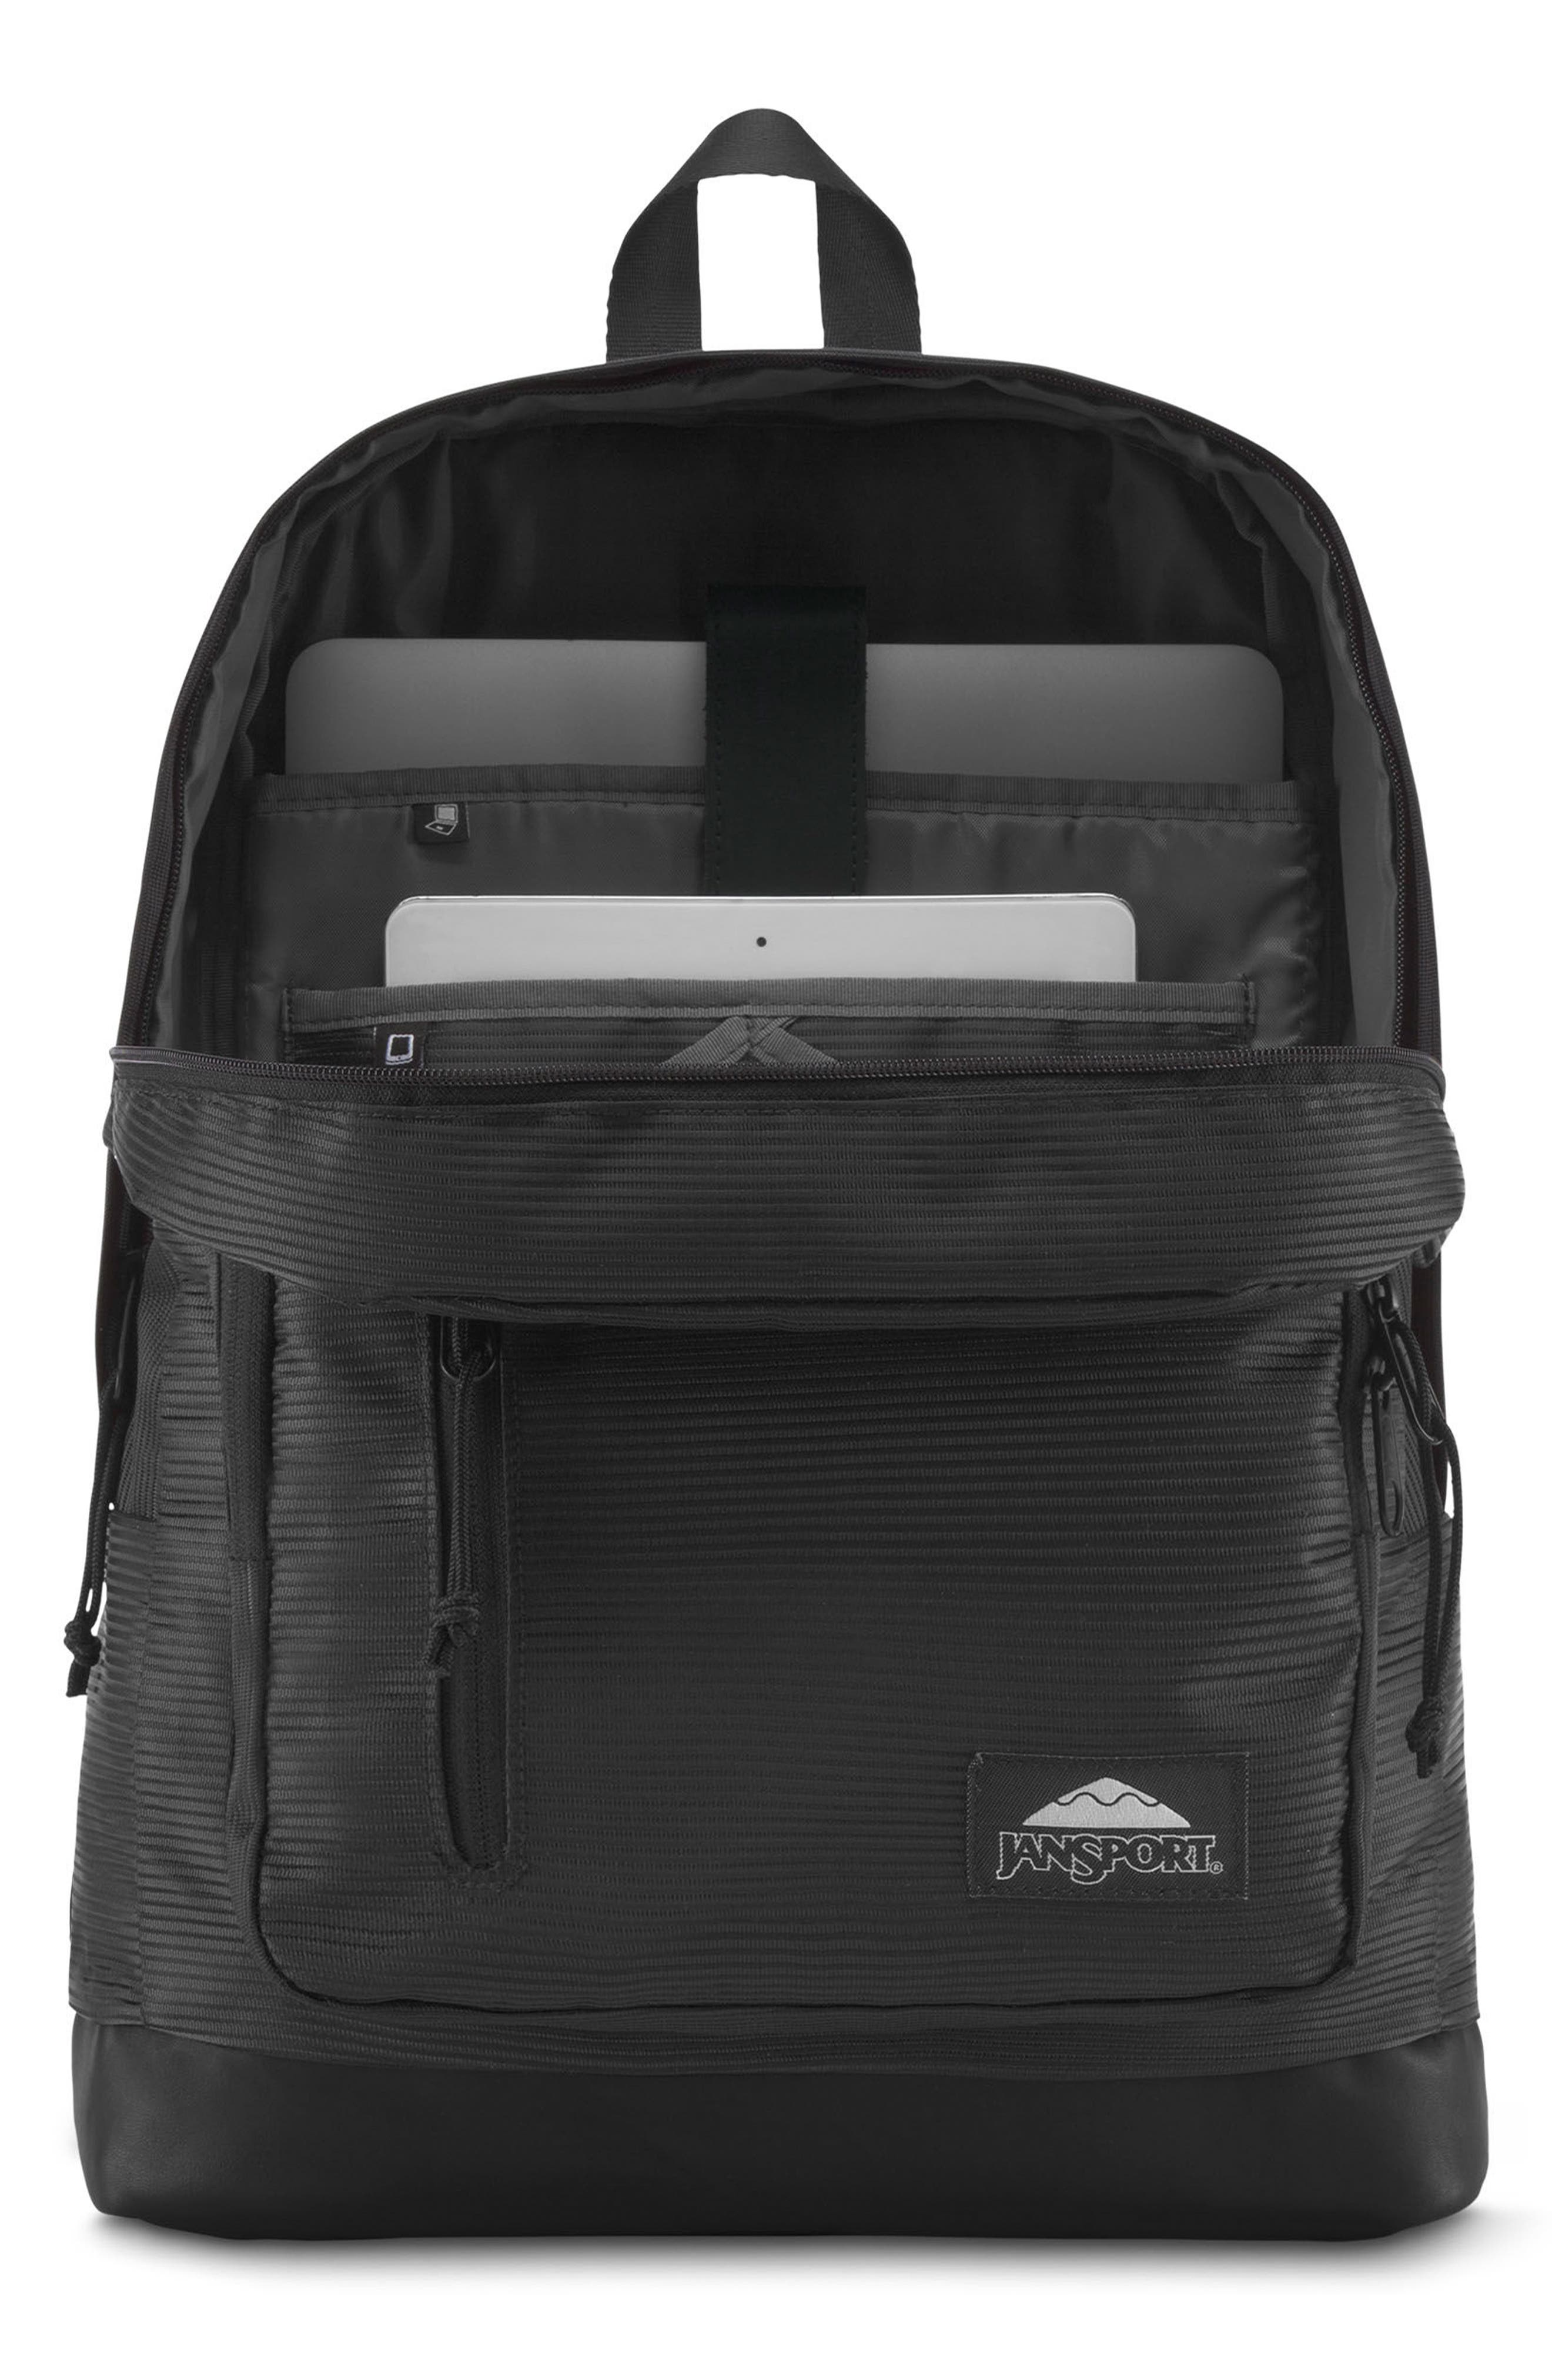 JANSPORT,                             Axiom Backpack,                             Alternate thumbnail 2, color,                             001